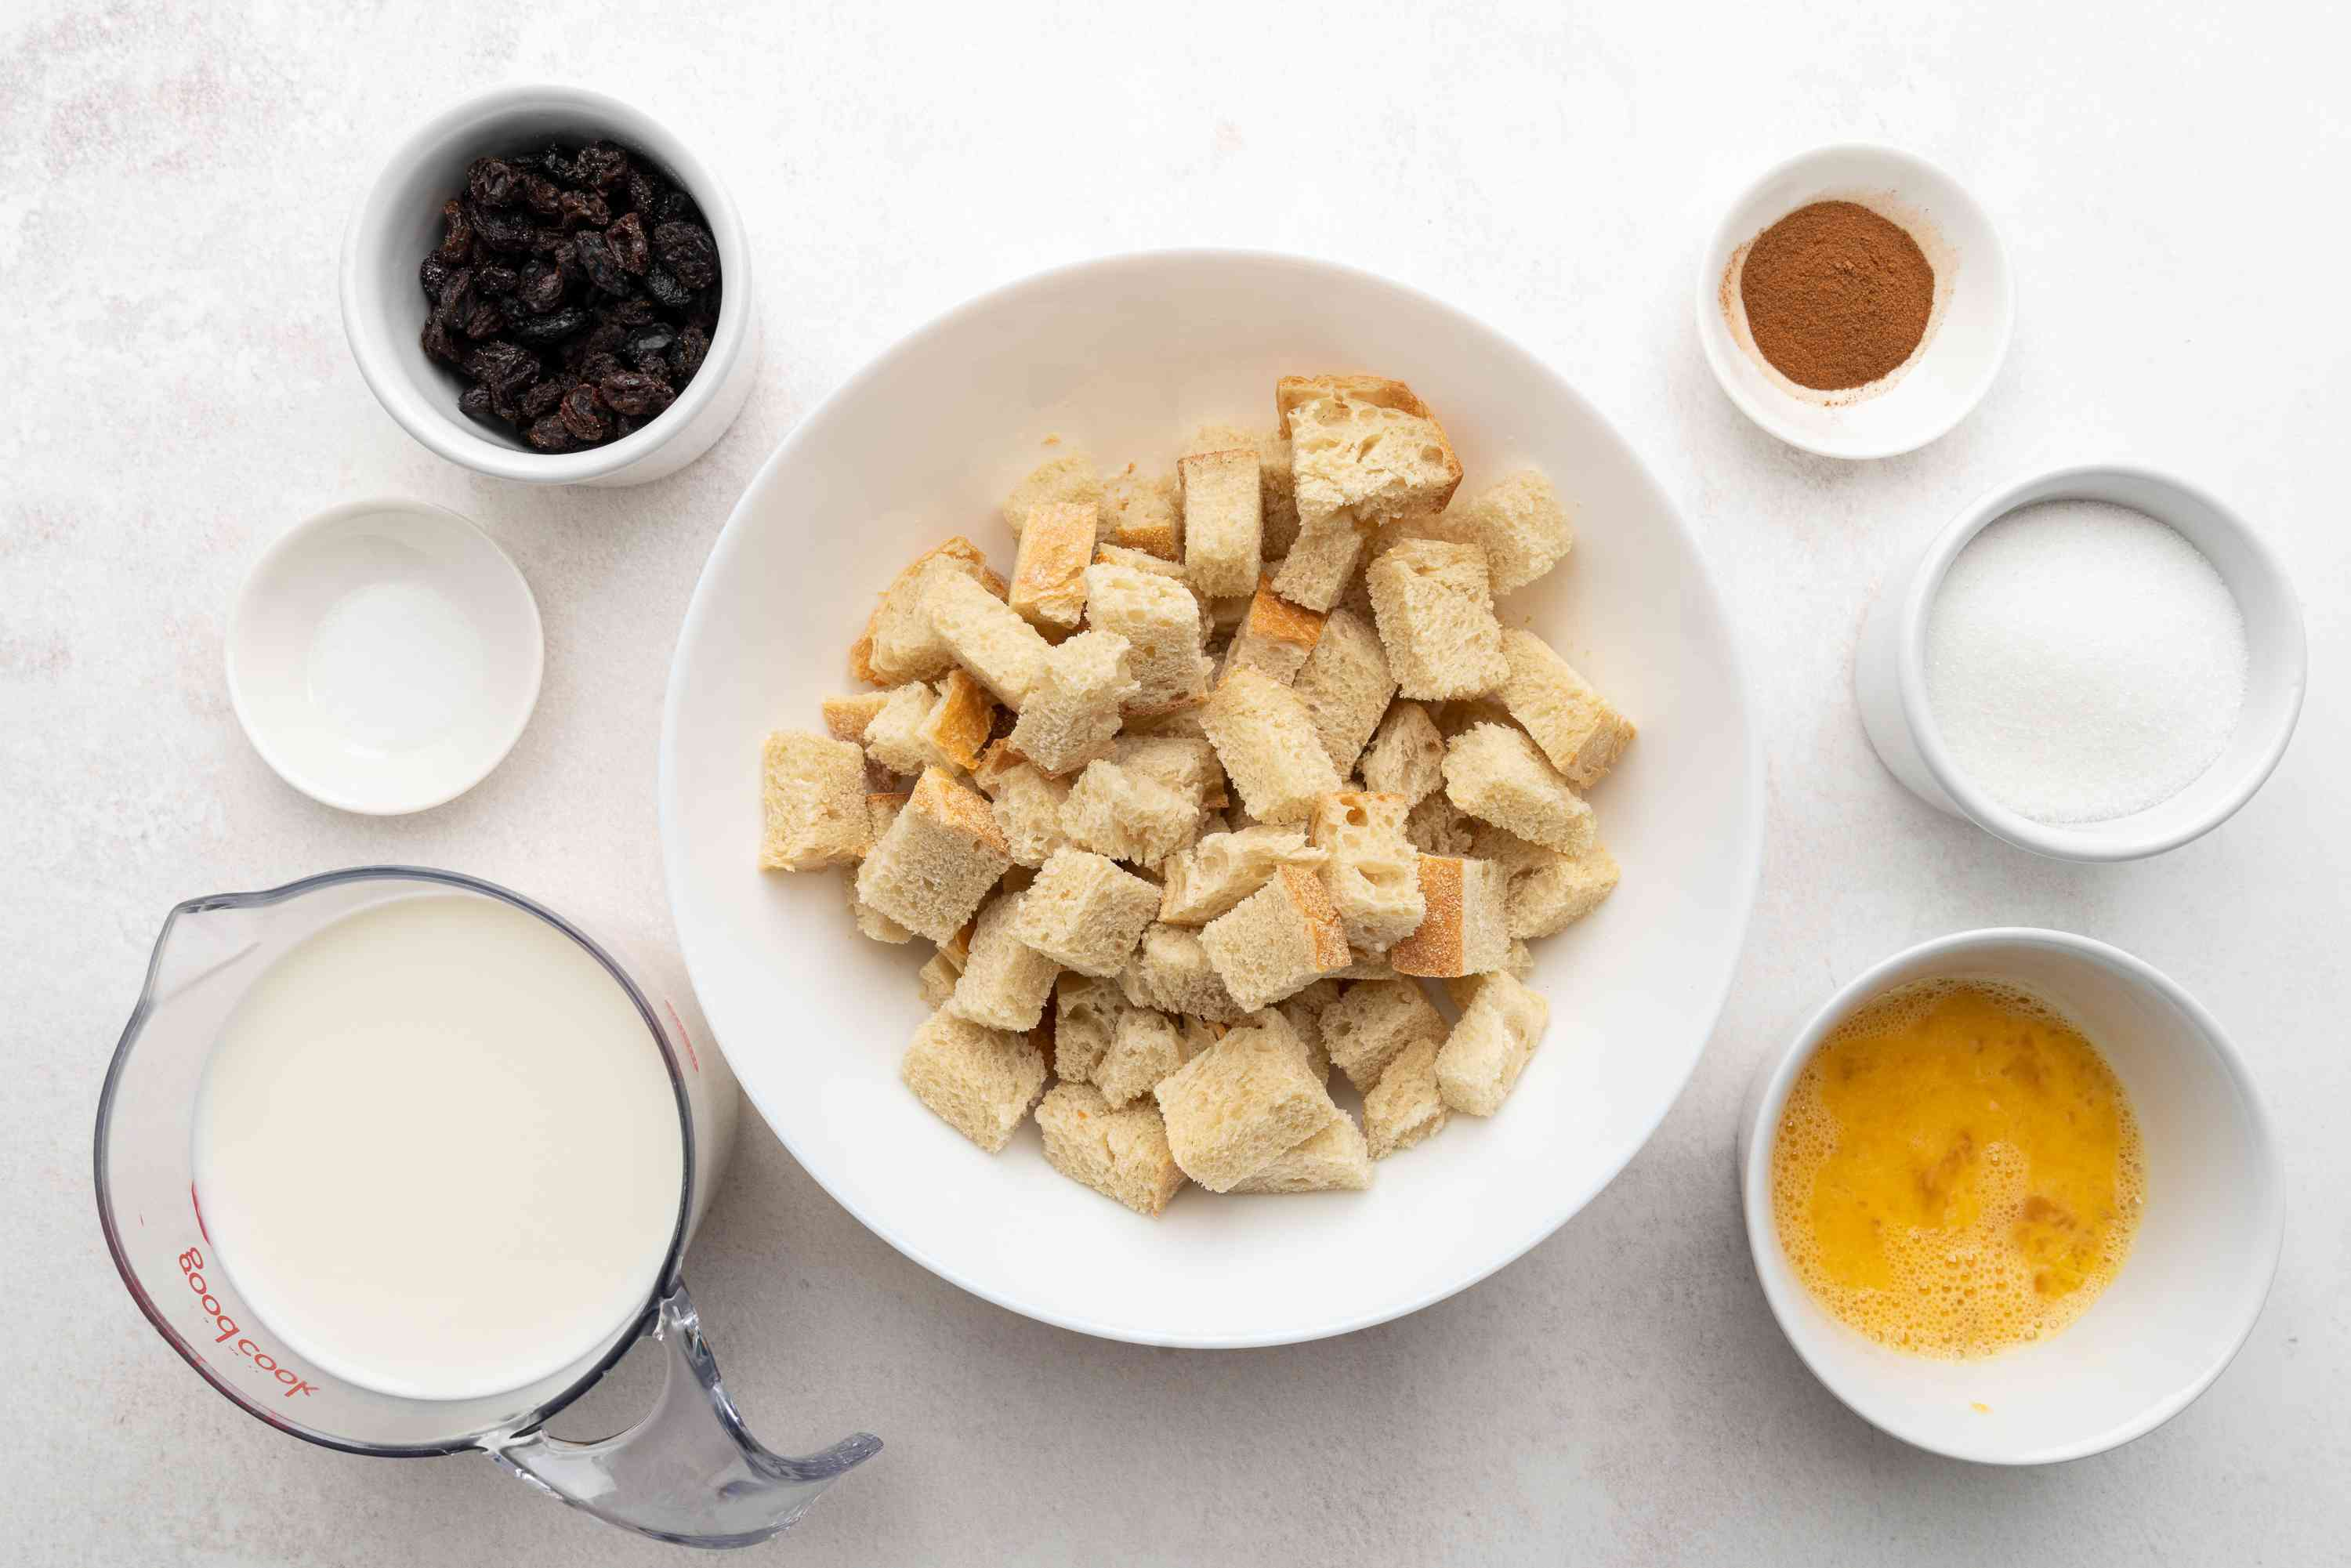 Old Fashioned Spiced Bread Pudding With Raisins ingredients